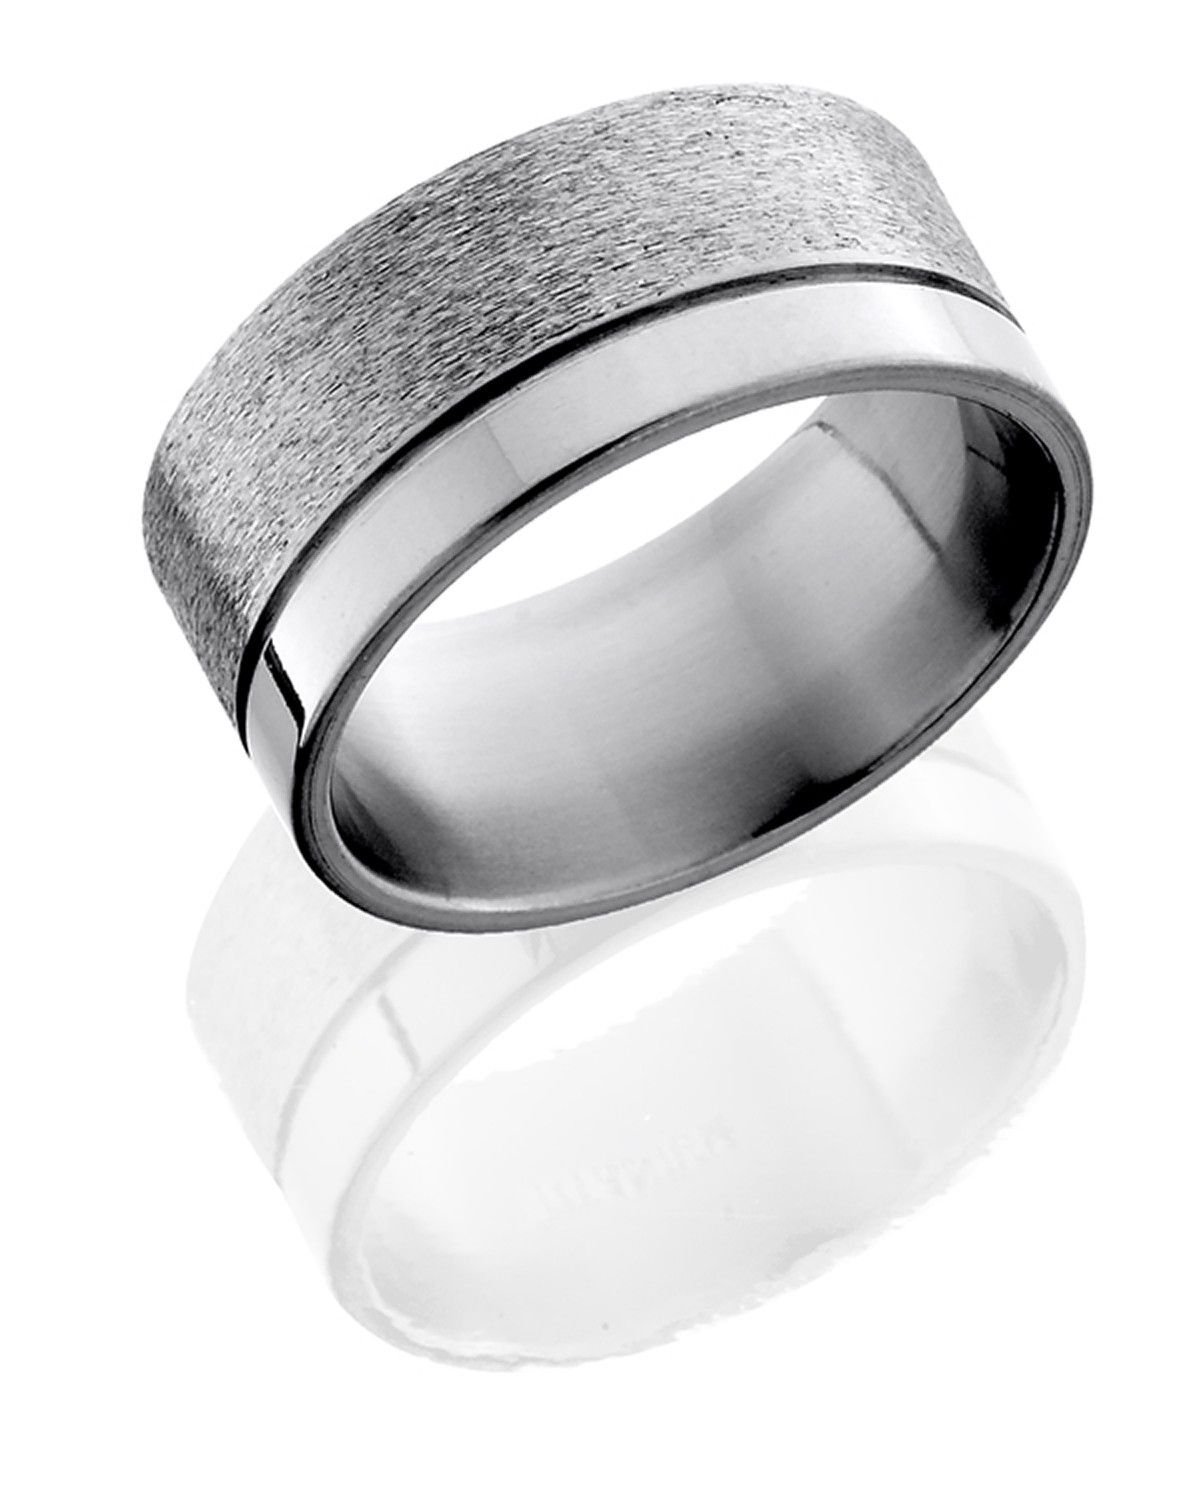 Weston Titanium Wedding Band With Off Center Groove By Lashbrook